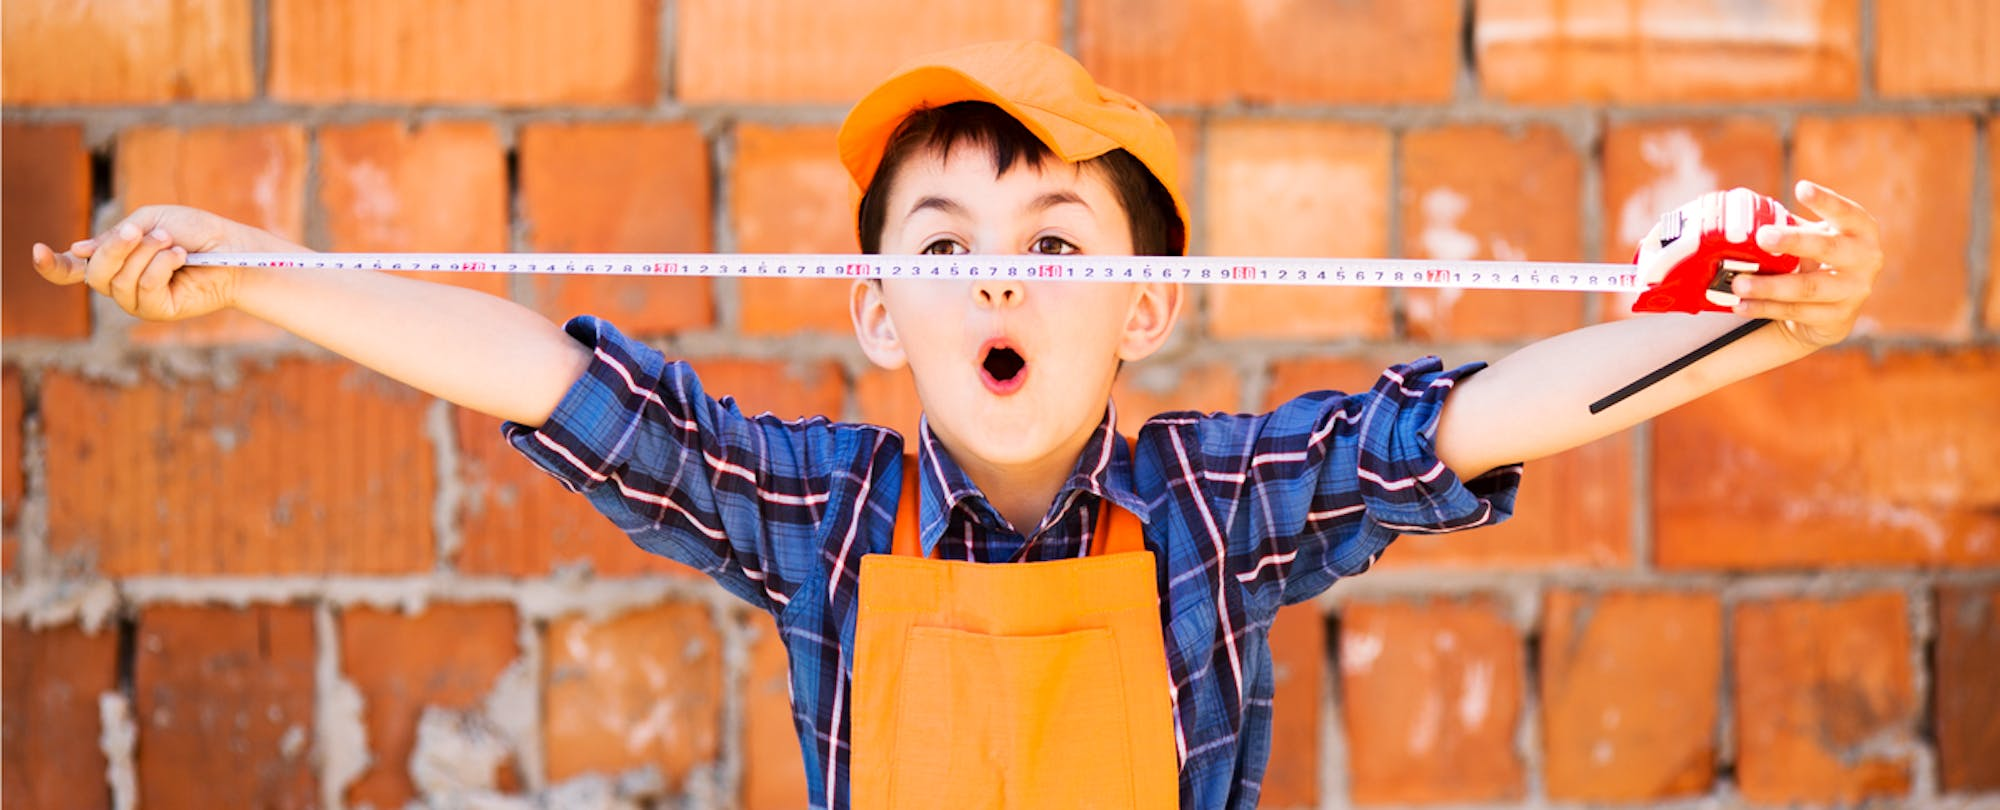 We Know SEL Skills Are Important, So How the Heck Do We Measure Them?